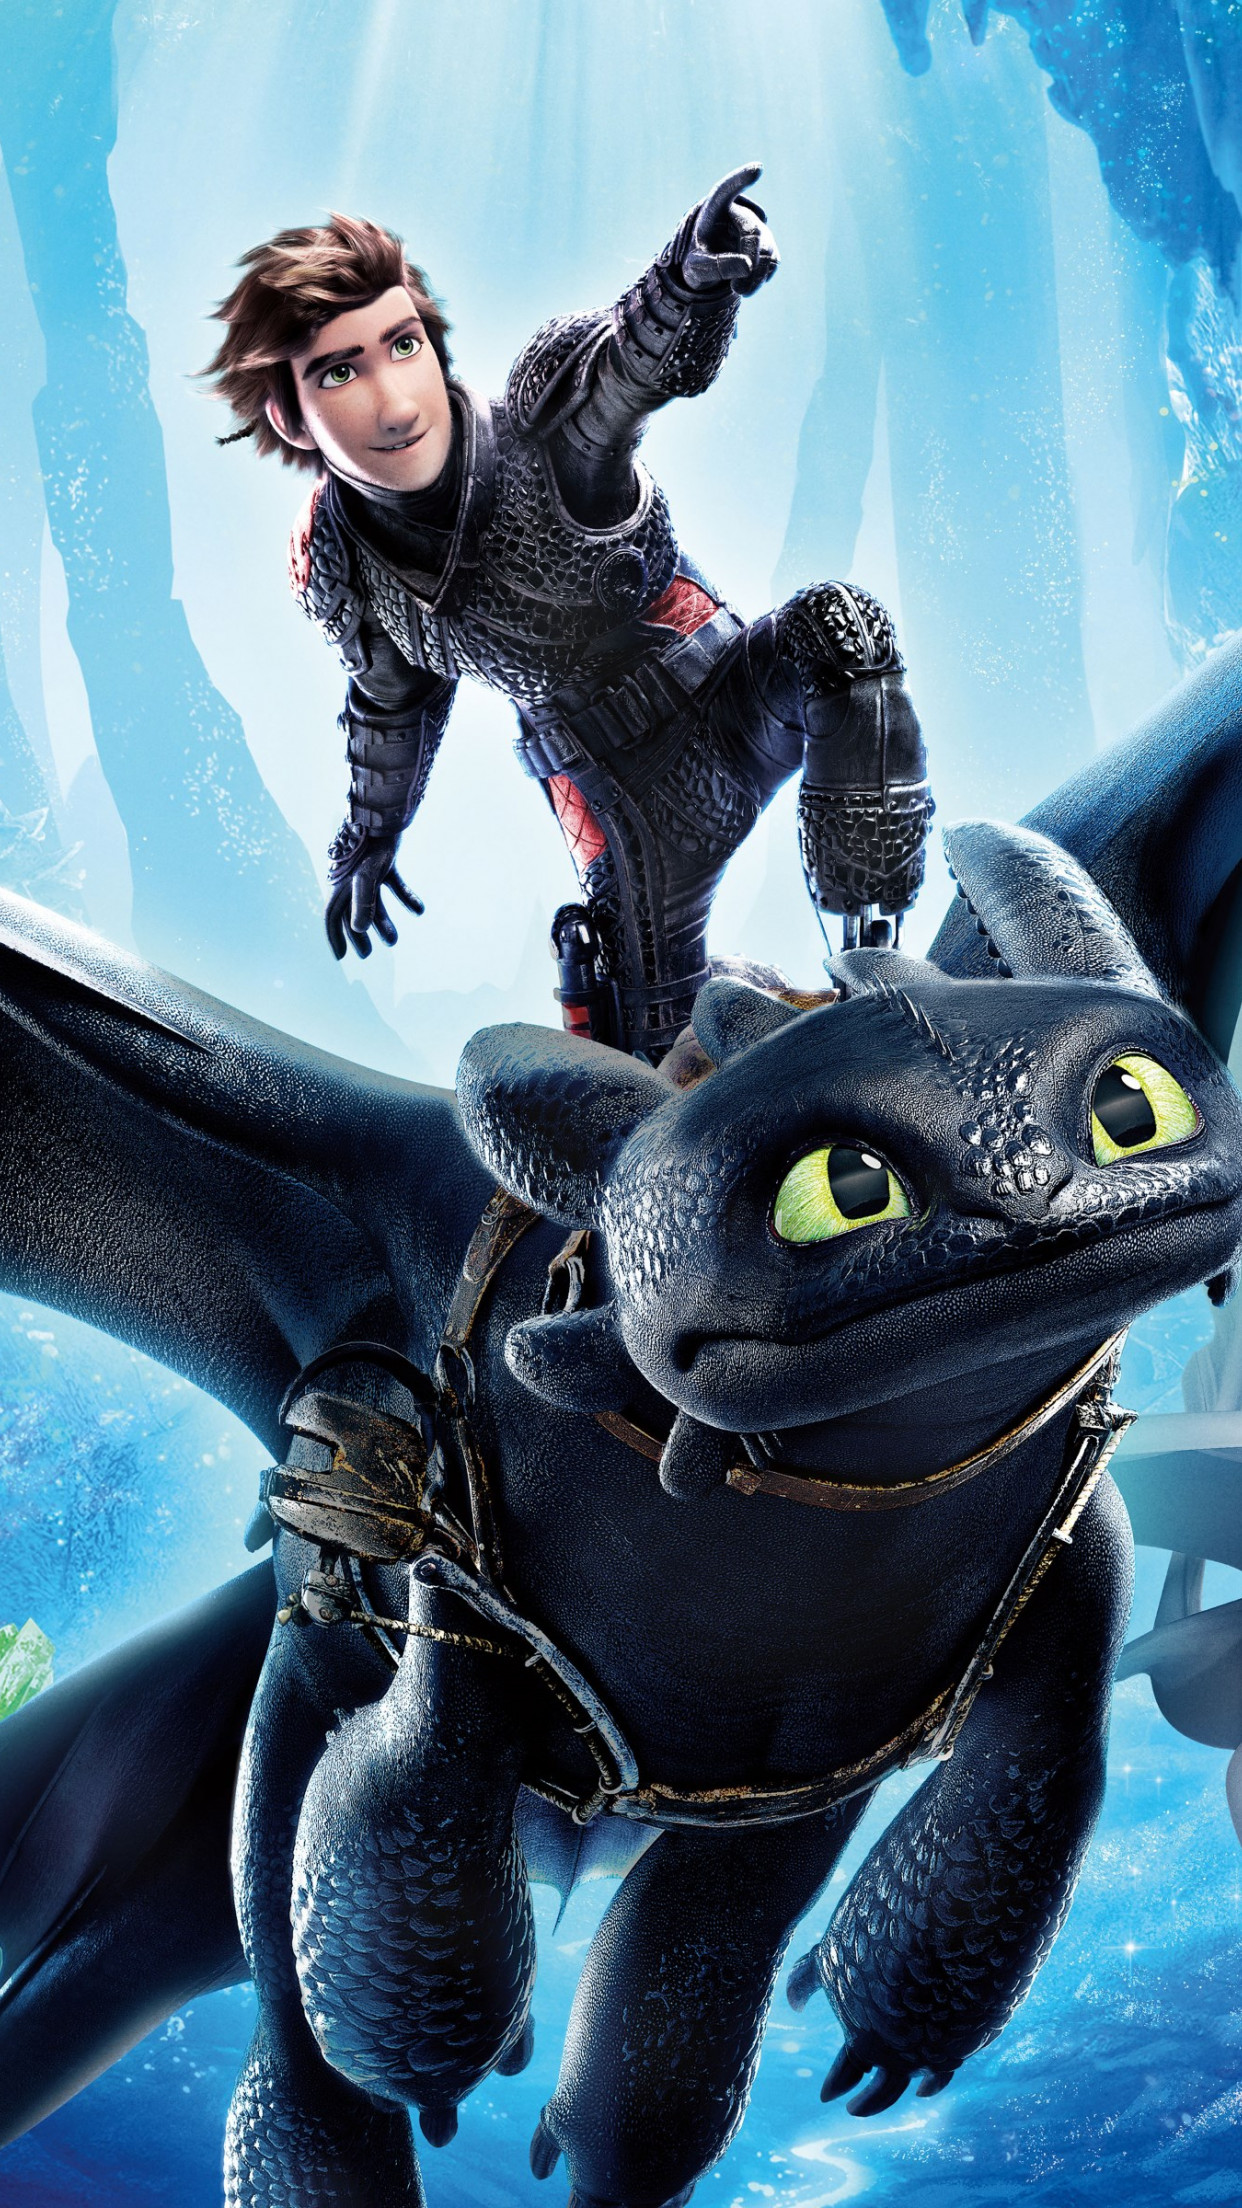 Download Wallpaper How To Train Your Dragon 2019 1242x2208